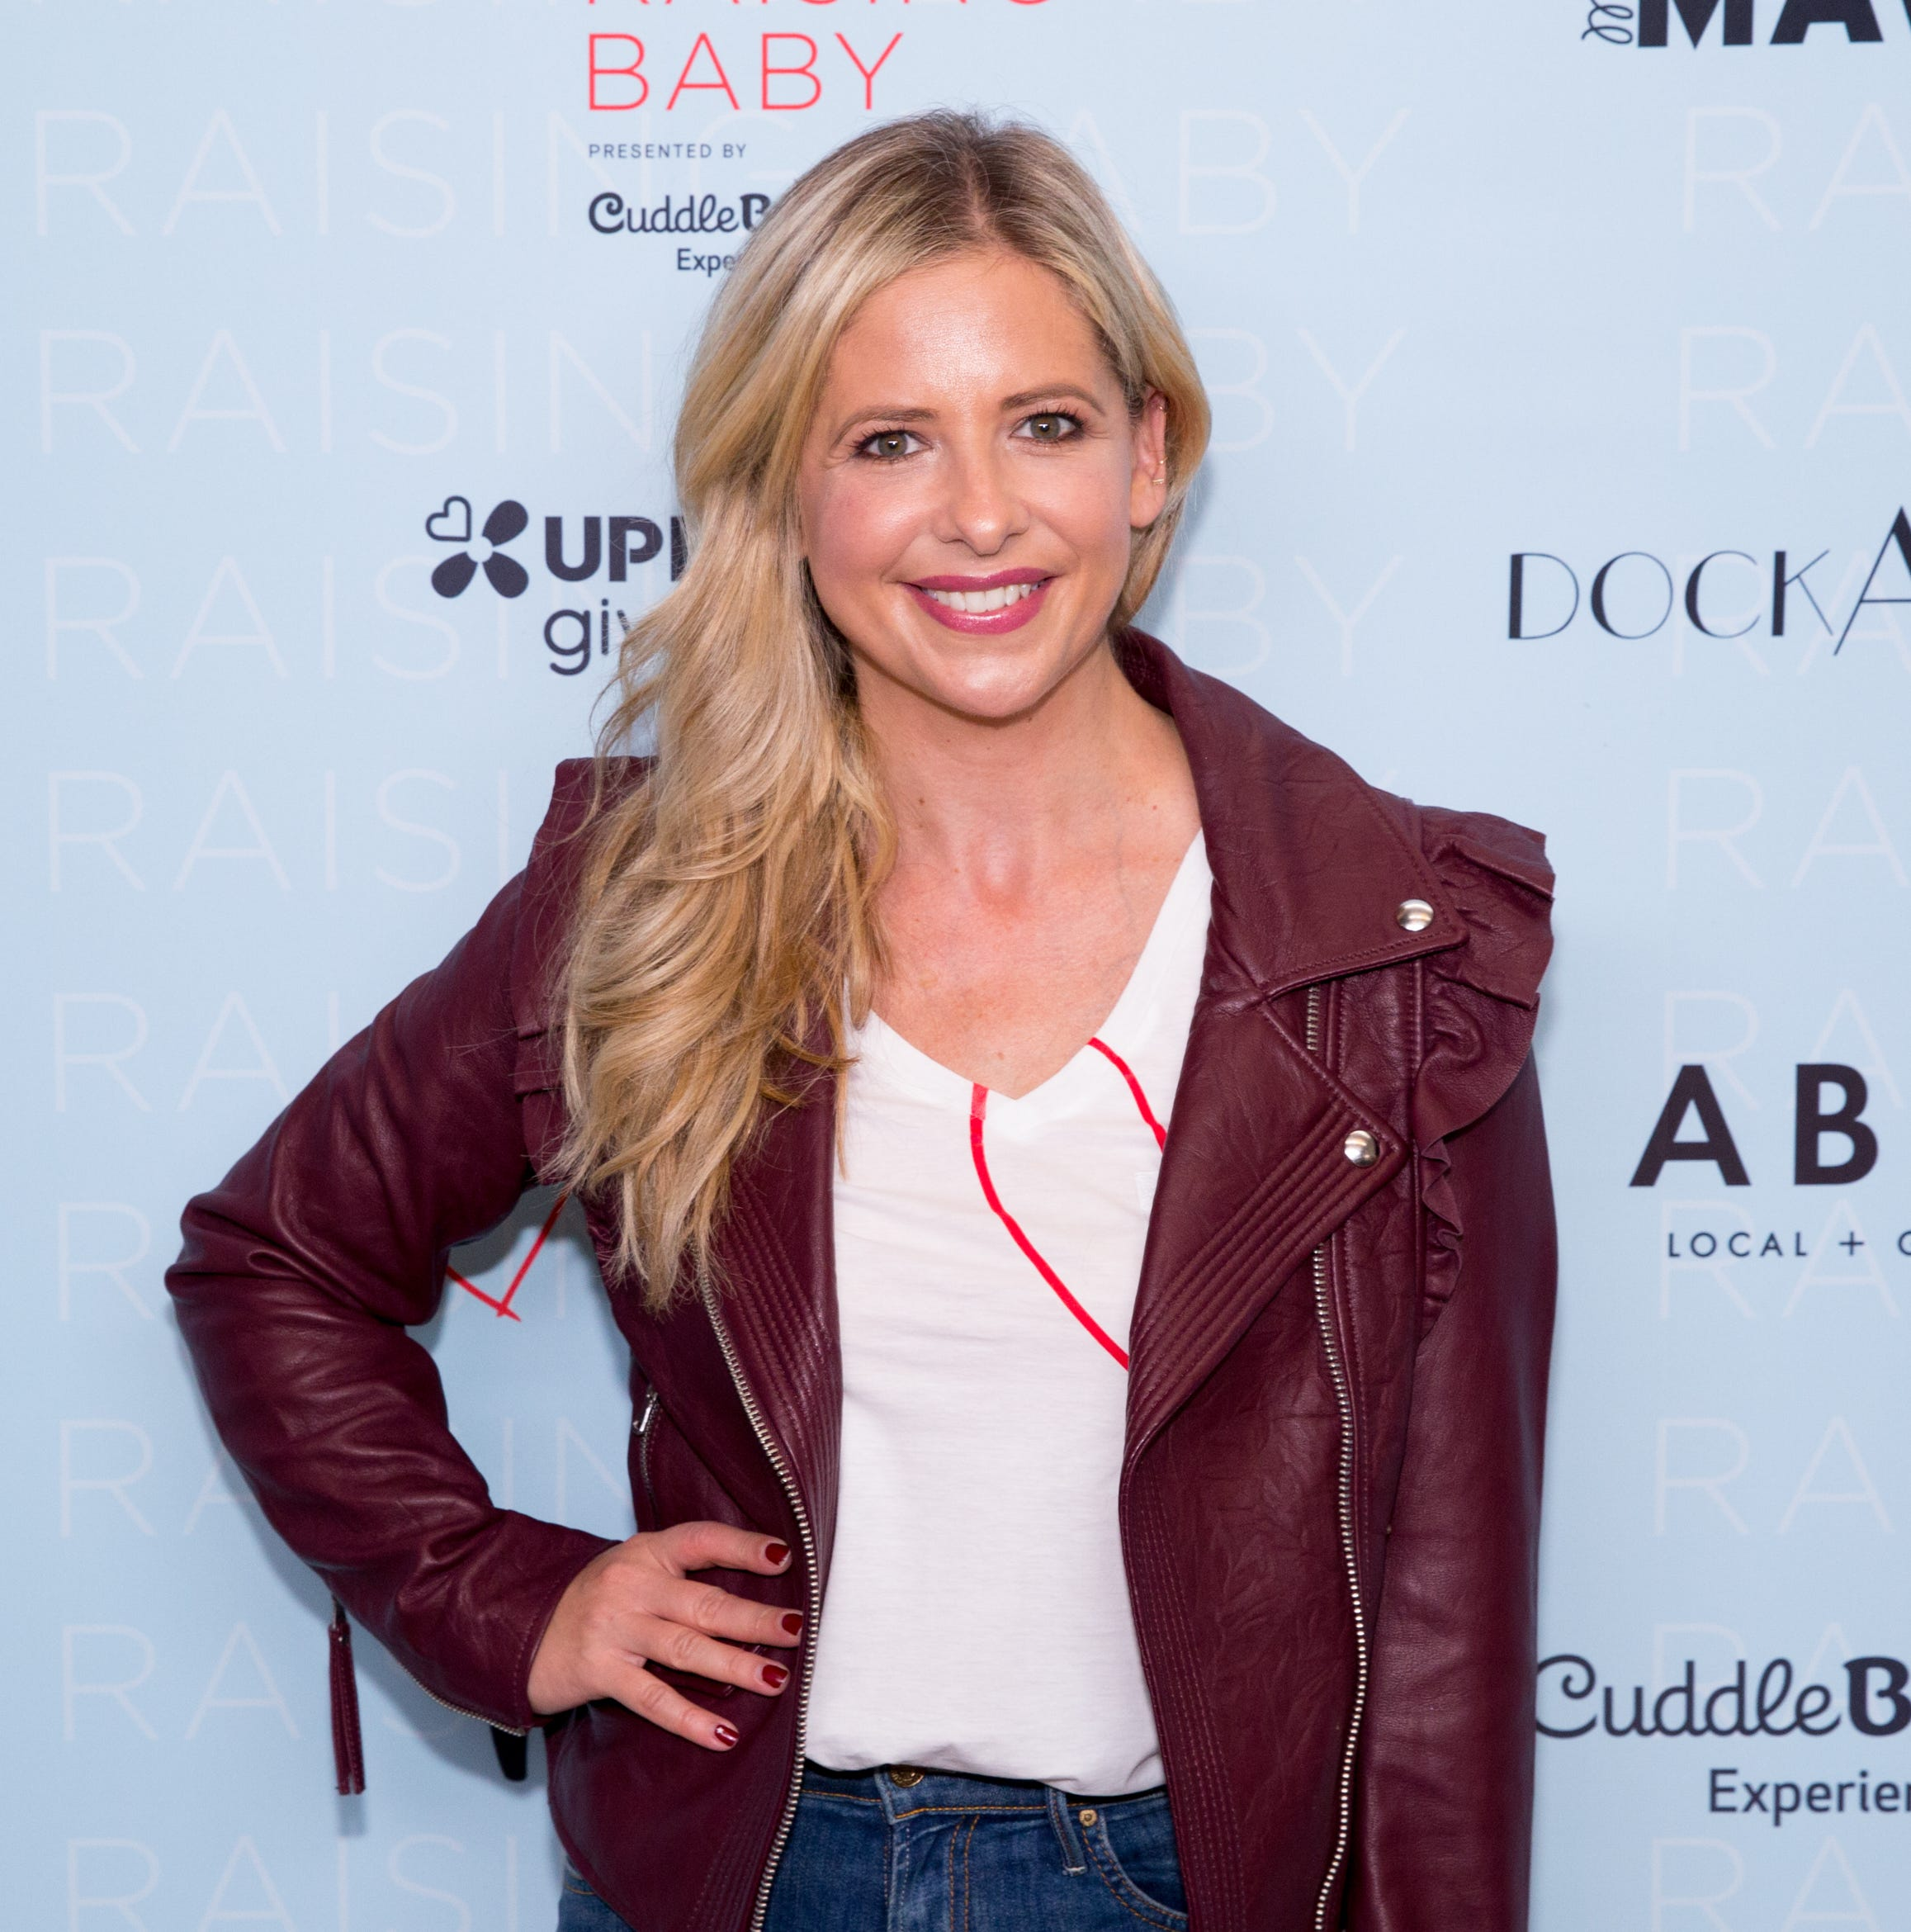 LOS ANGELES, CA - NOVEMBER 03:  Sarah Michelle Gellar attends Alliance Of Moms Presents Raising Baby at Children's Institute on November 3, 2018 in Los Angeles, Californi  (Photo by Alison Buck/Getty Images for Alliance Of Moms) ORG XMIT: 775252033 ORIG FILE ID: 1056928312